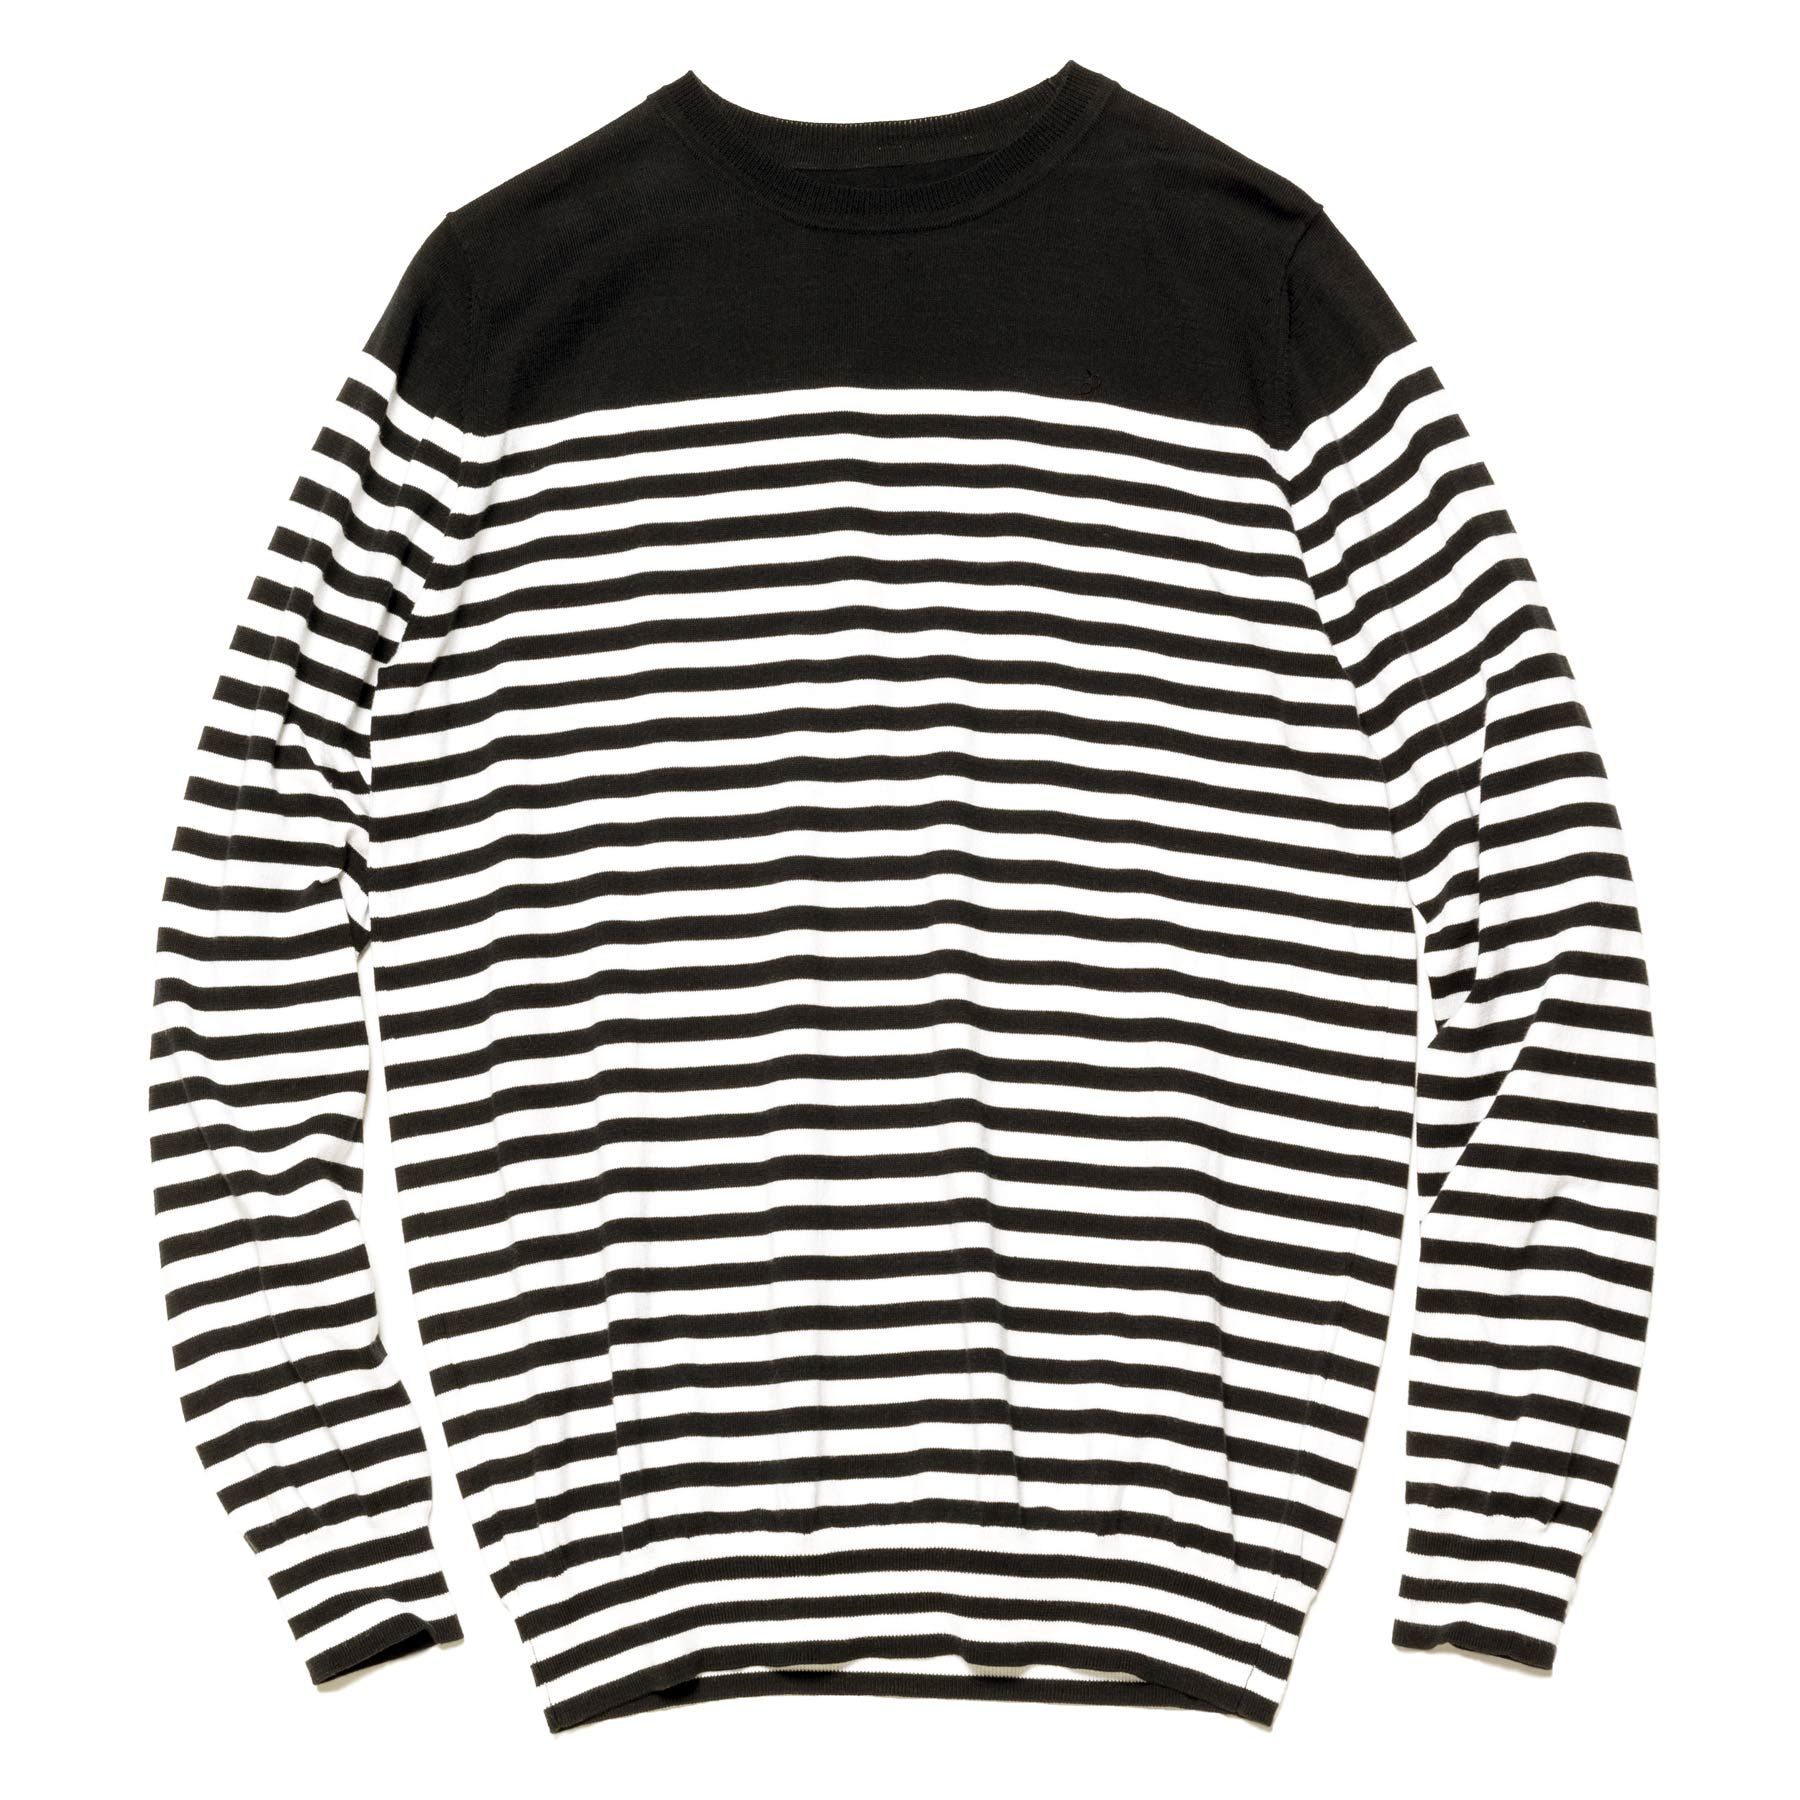 uniform experiment / BORDER CREW NECK KNIT -Black/White